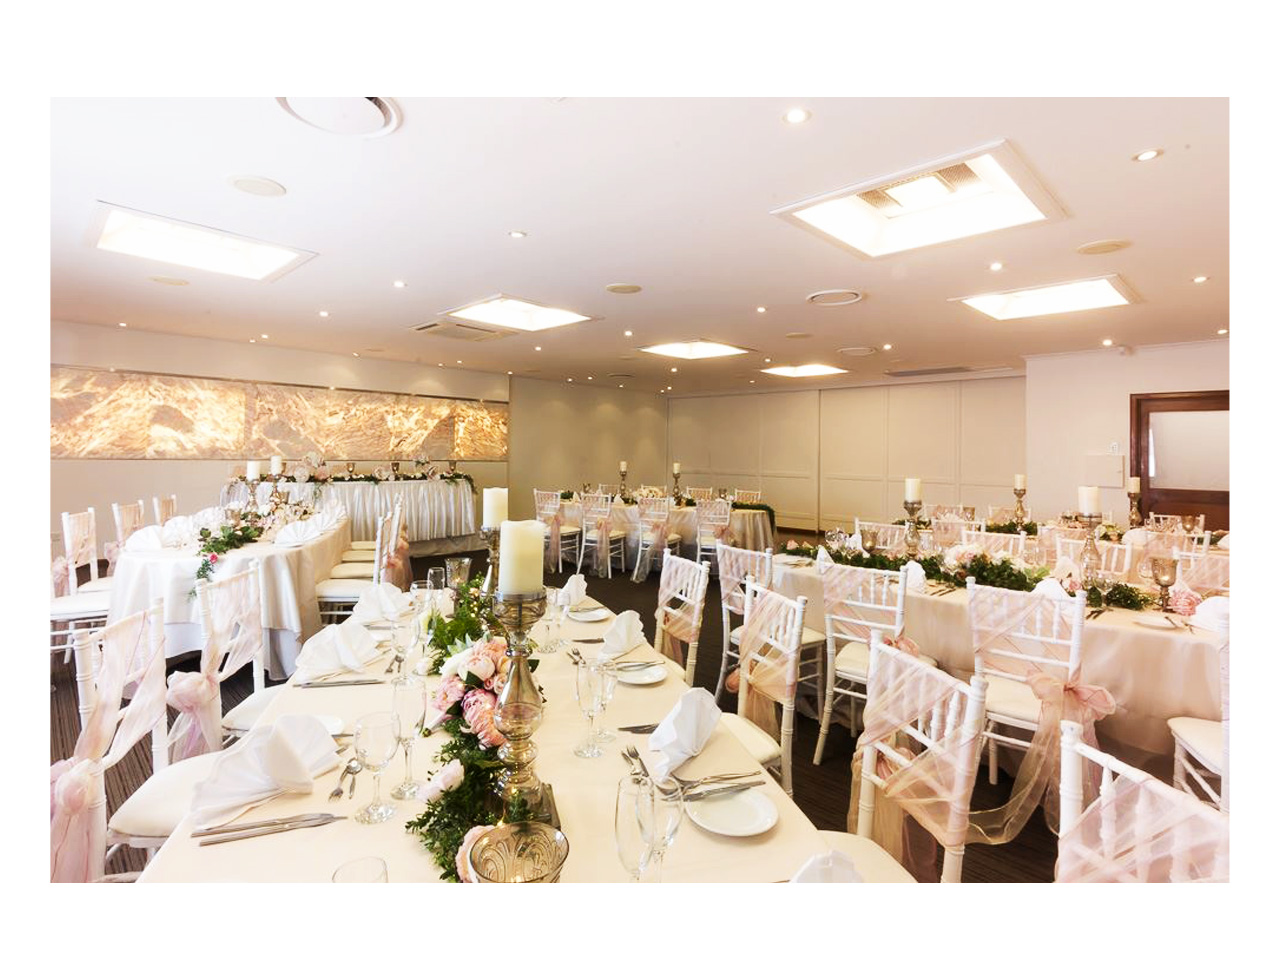 Room set for wedding reception with white tables and chairs